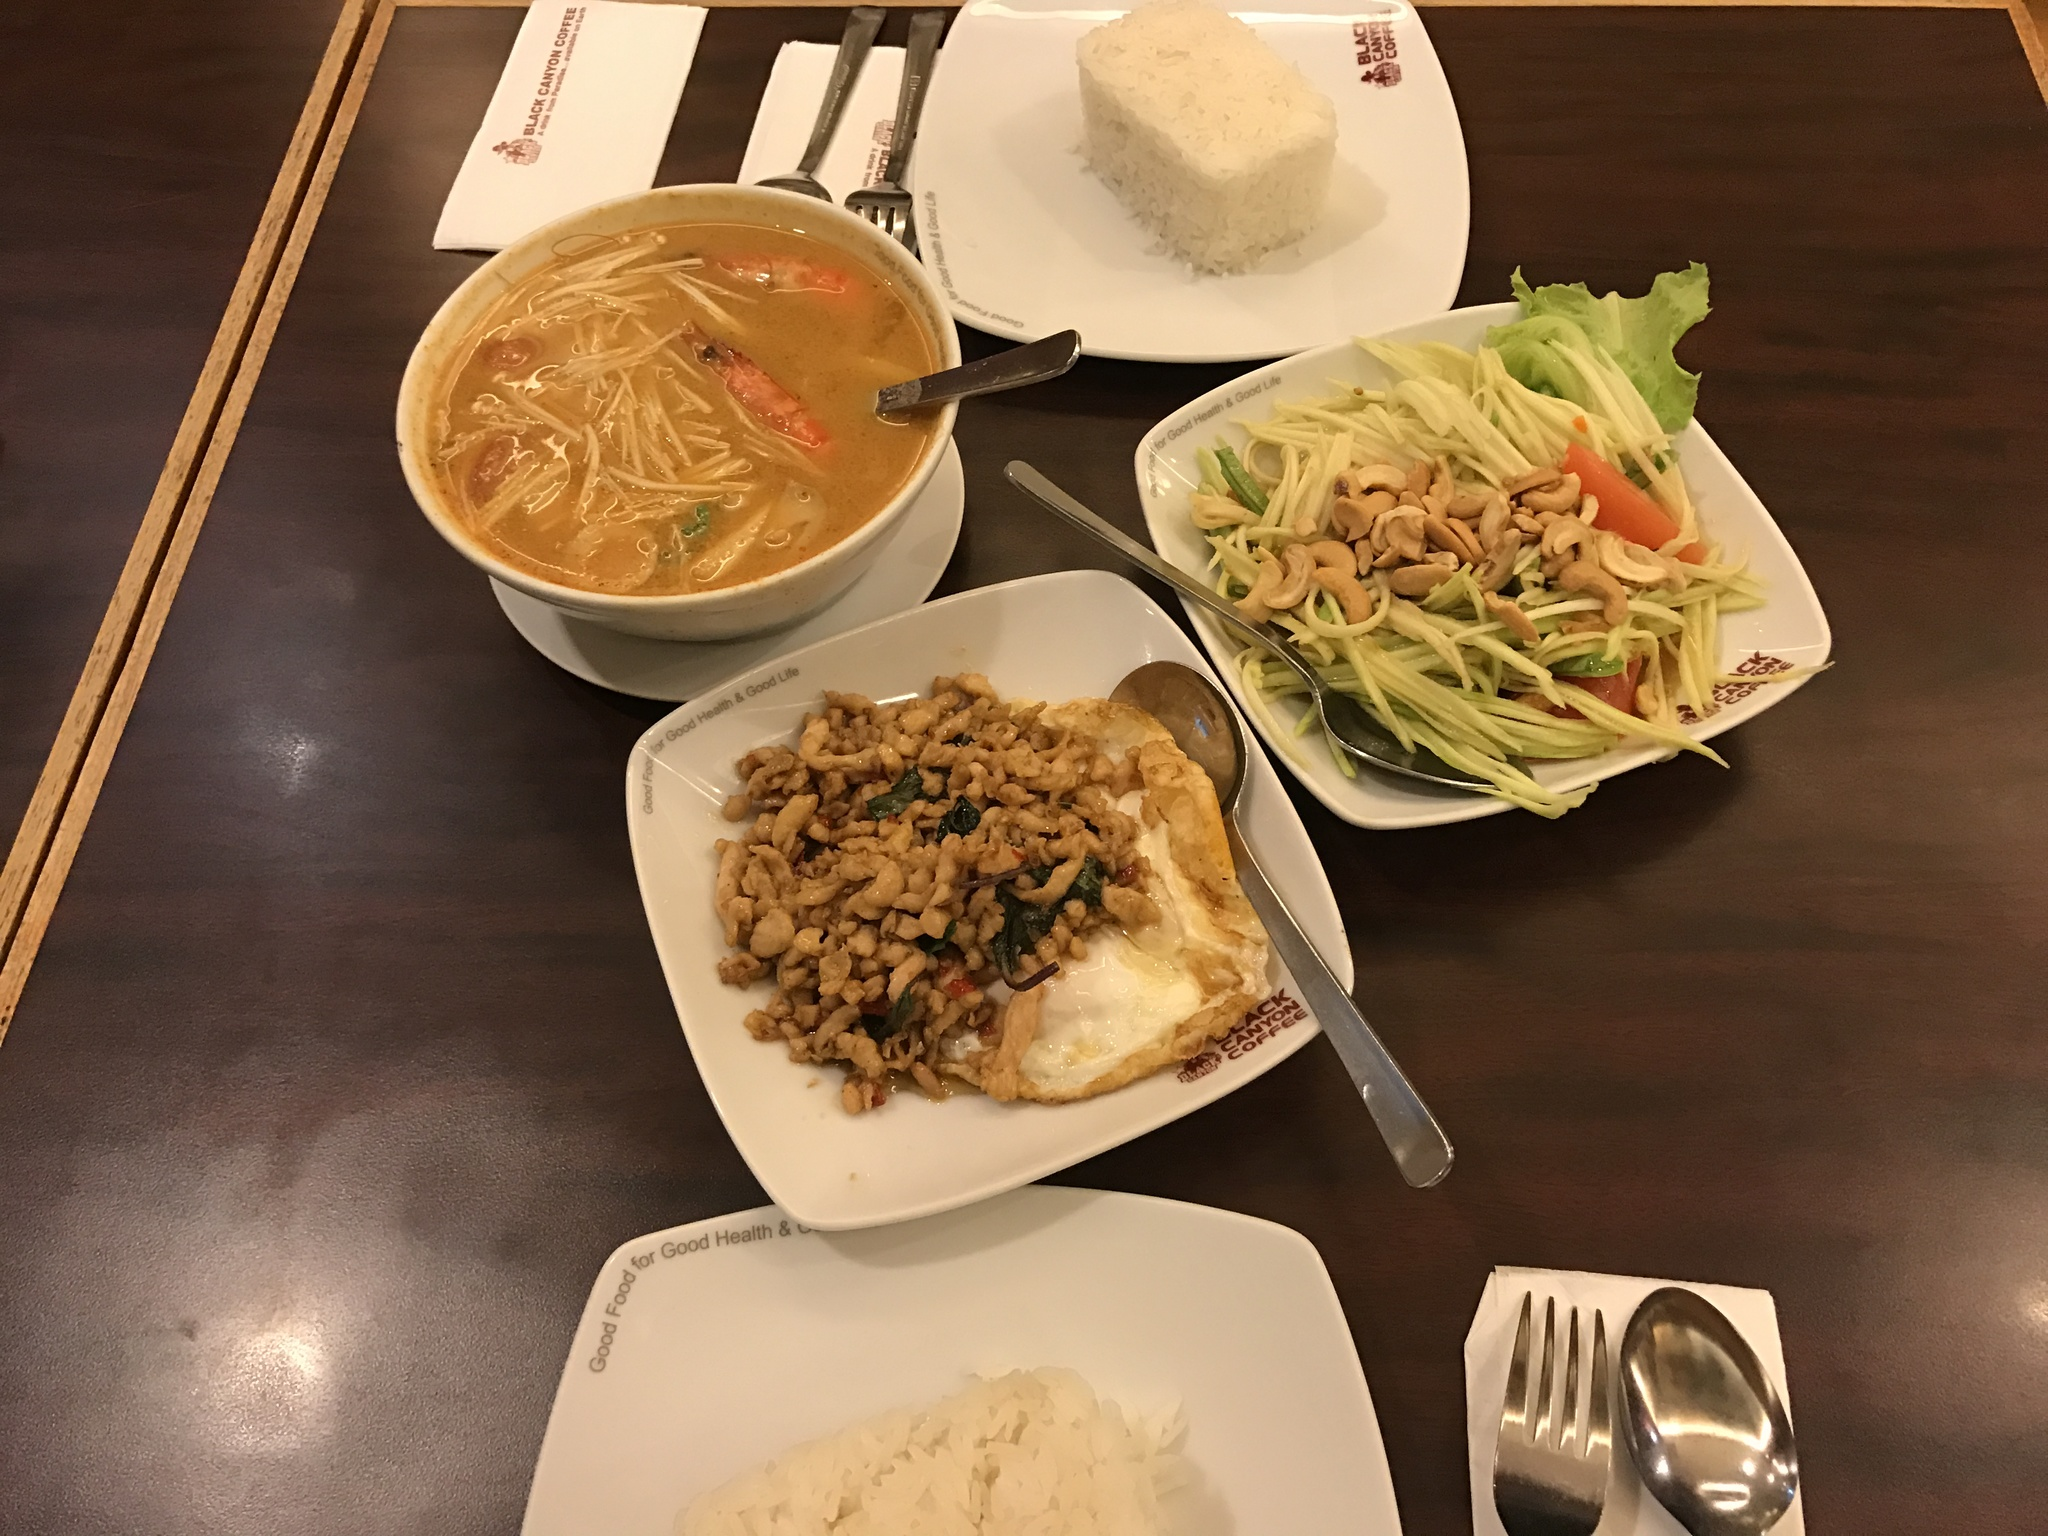 Black canyon coffee restaurant summit usj aroma asian for Aroma royal thai cuisine